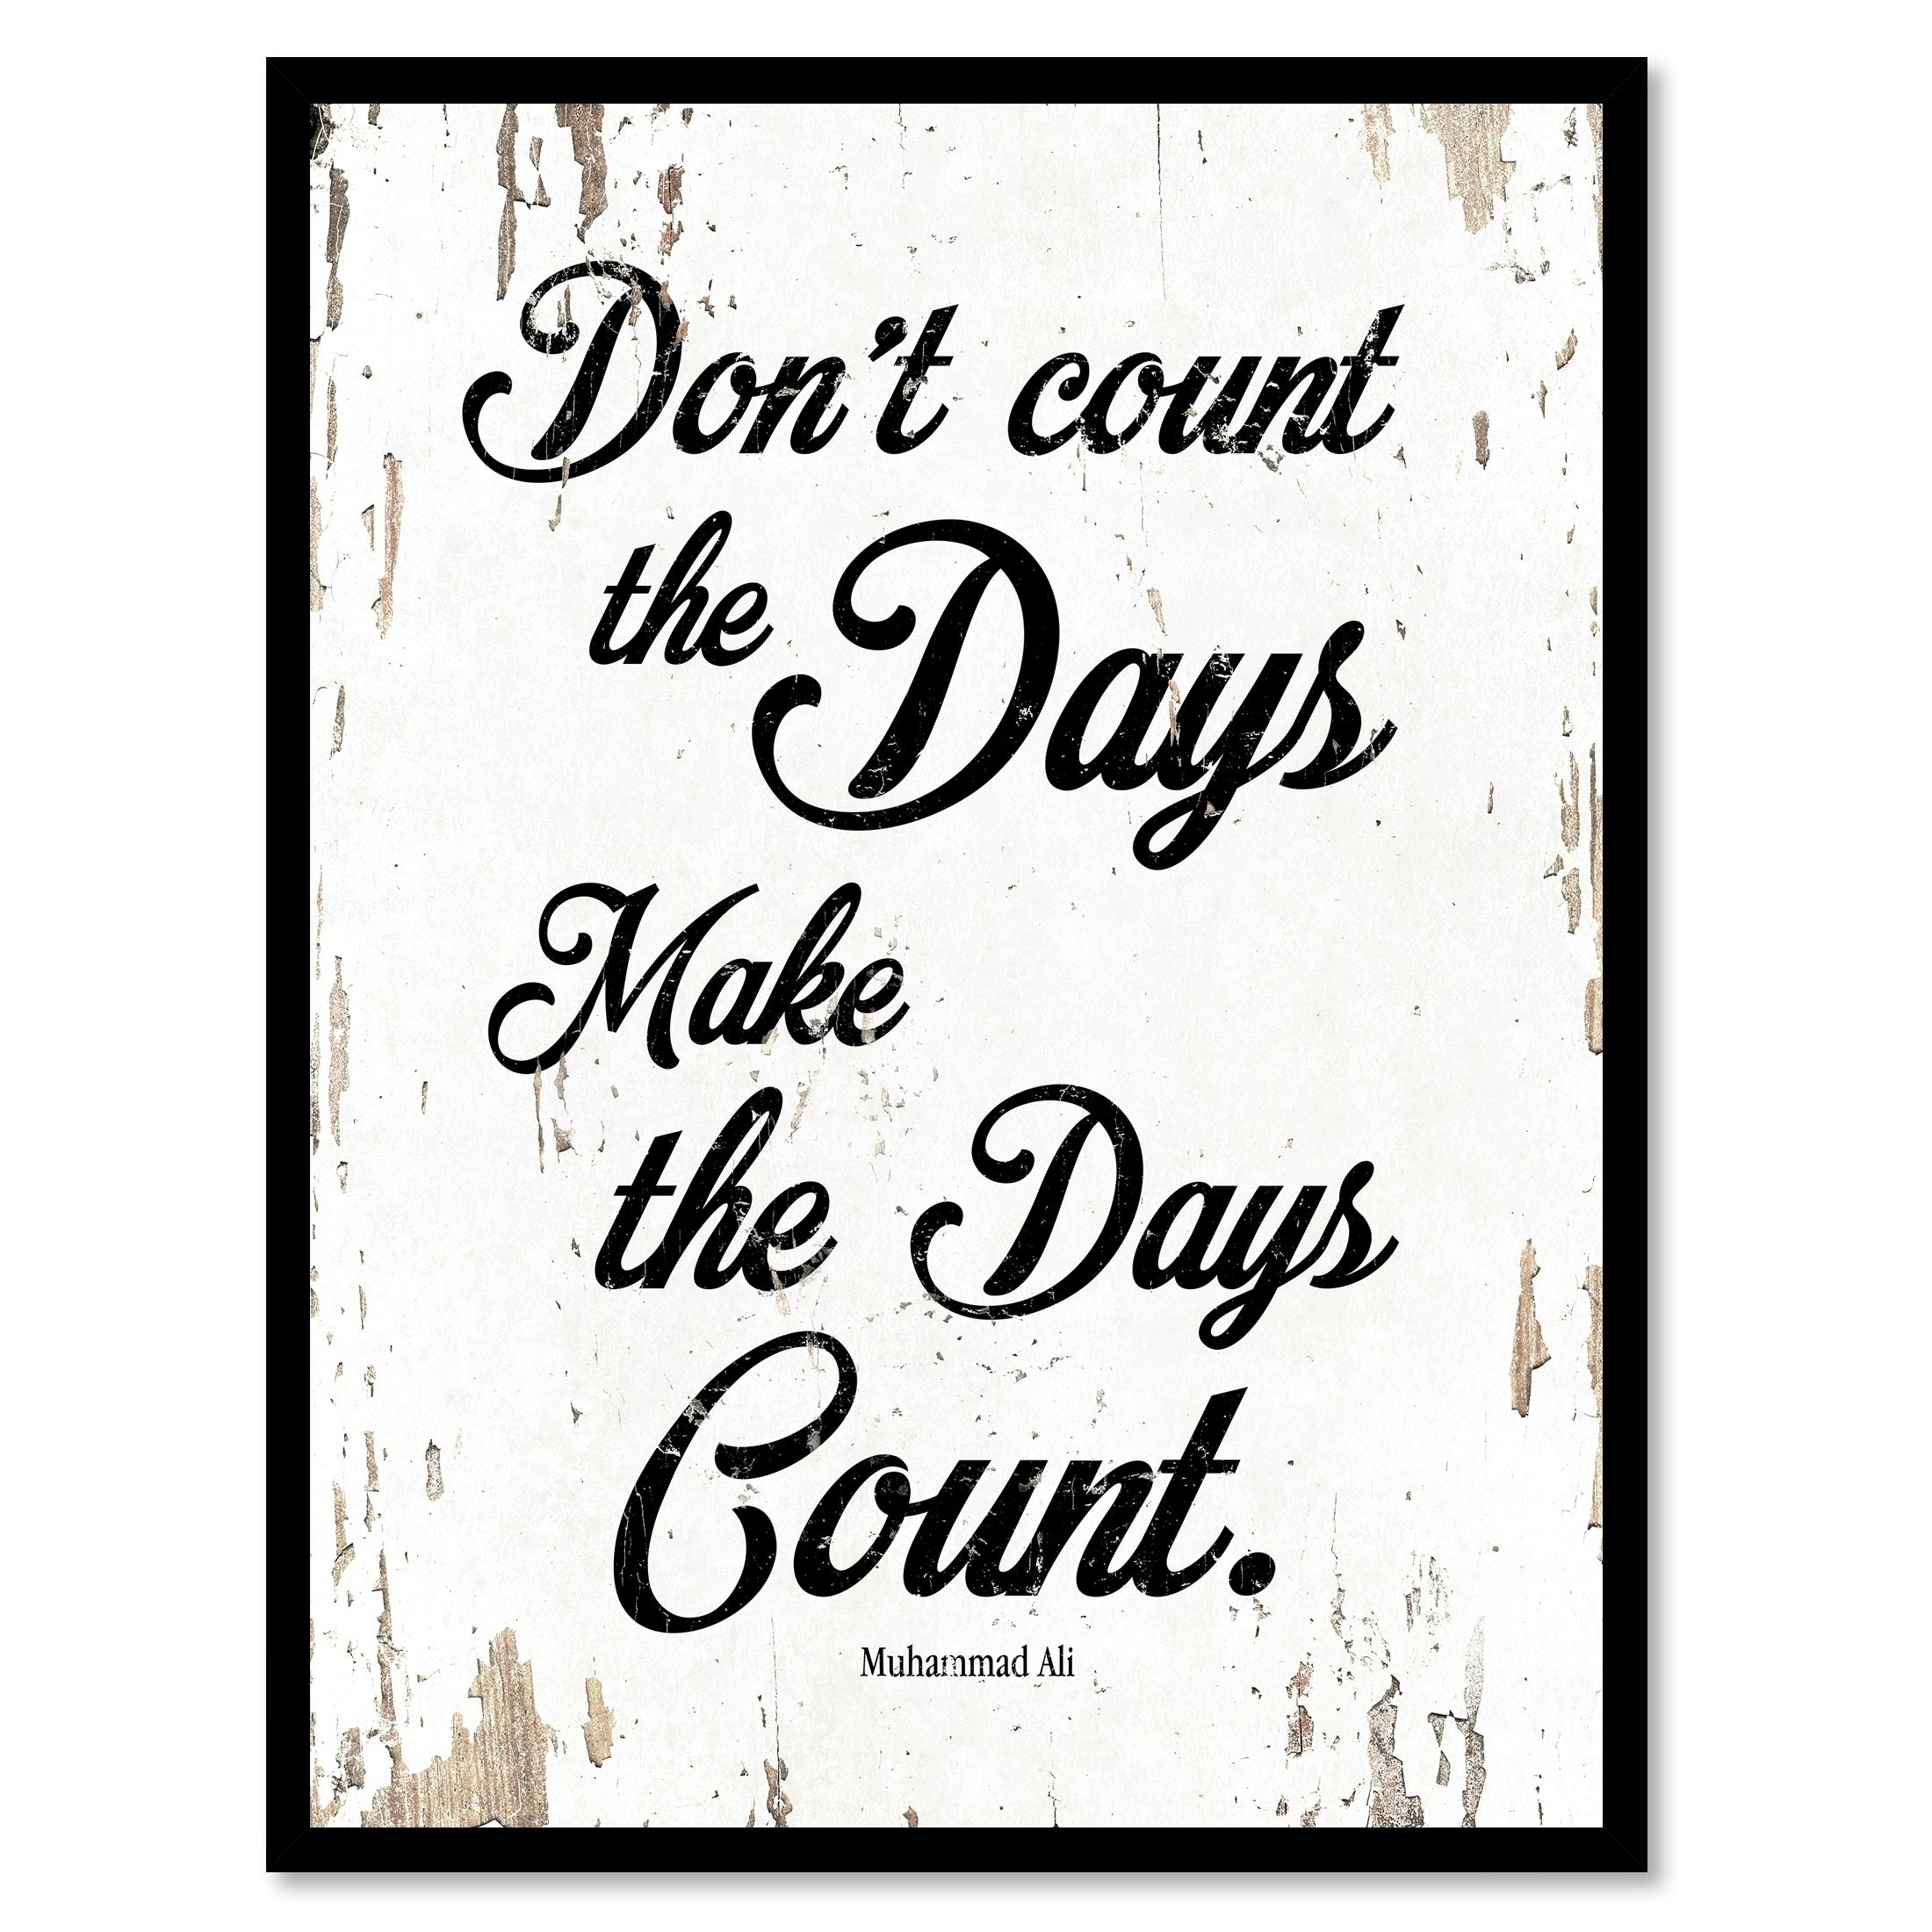 Dont count the days make the days count quote saying canvas print dont count the days make the days count quote saying canvas print picture frame home decor wall art free shipping on orders over 45 overstock jeuxipadfo Gallery